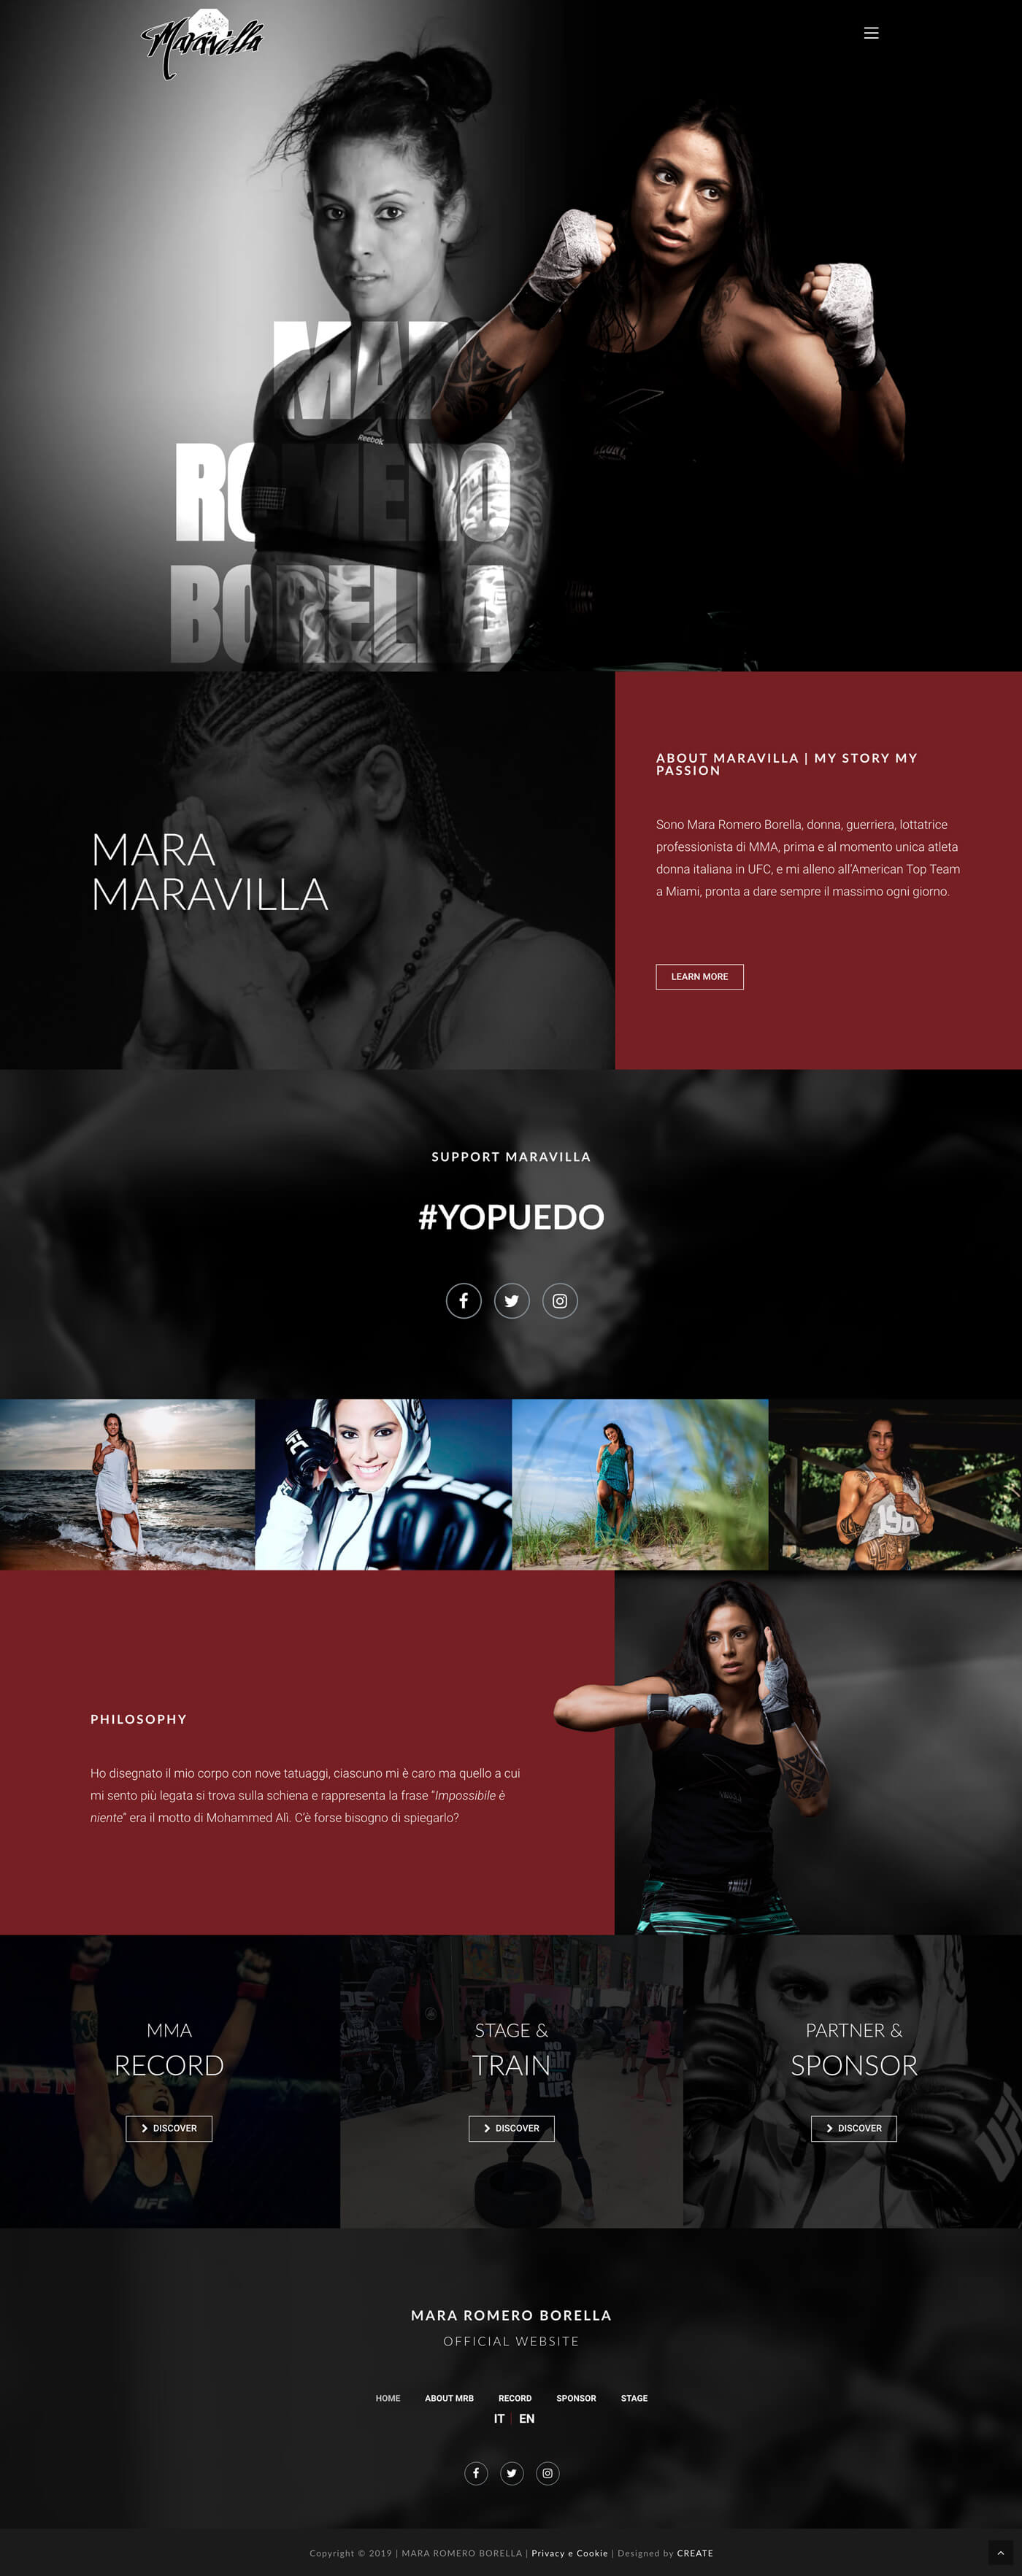 Mara Romero Borella Official Website